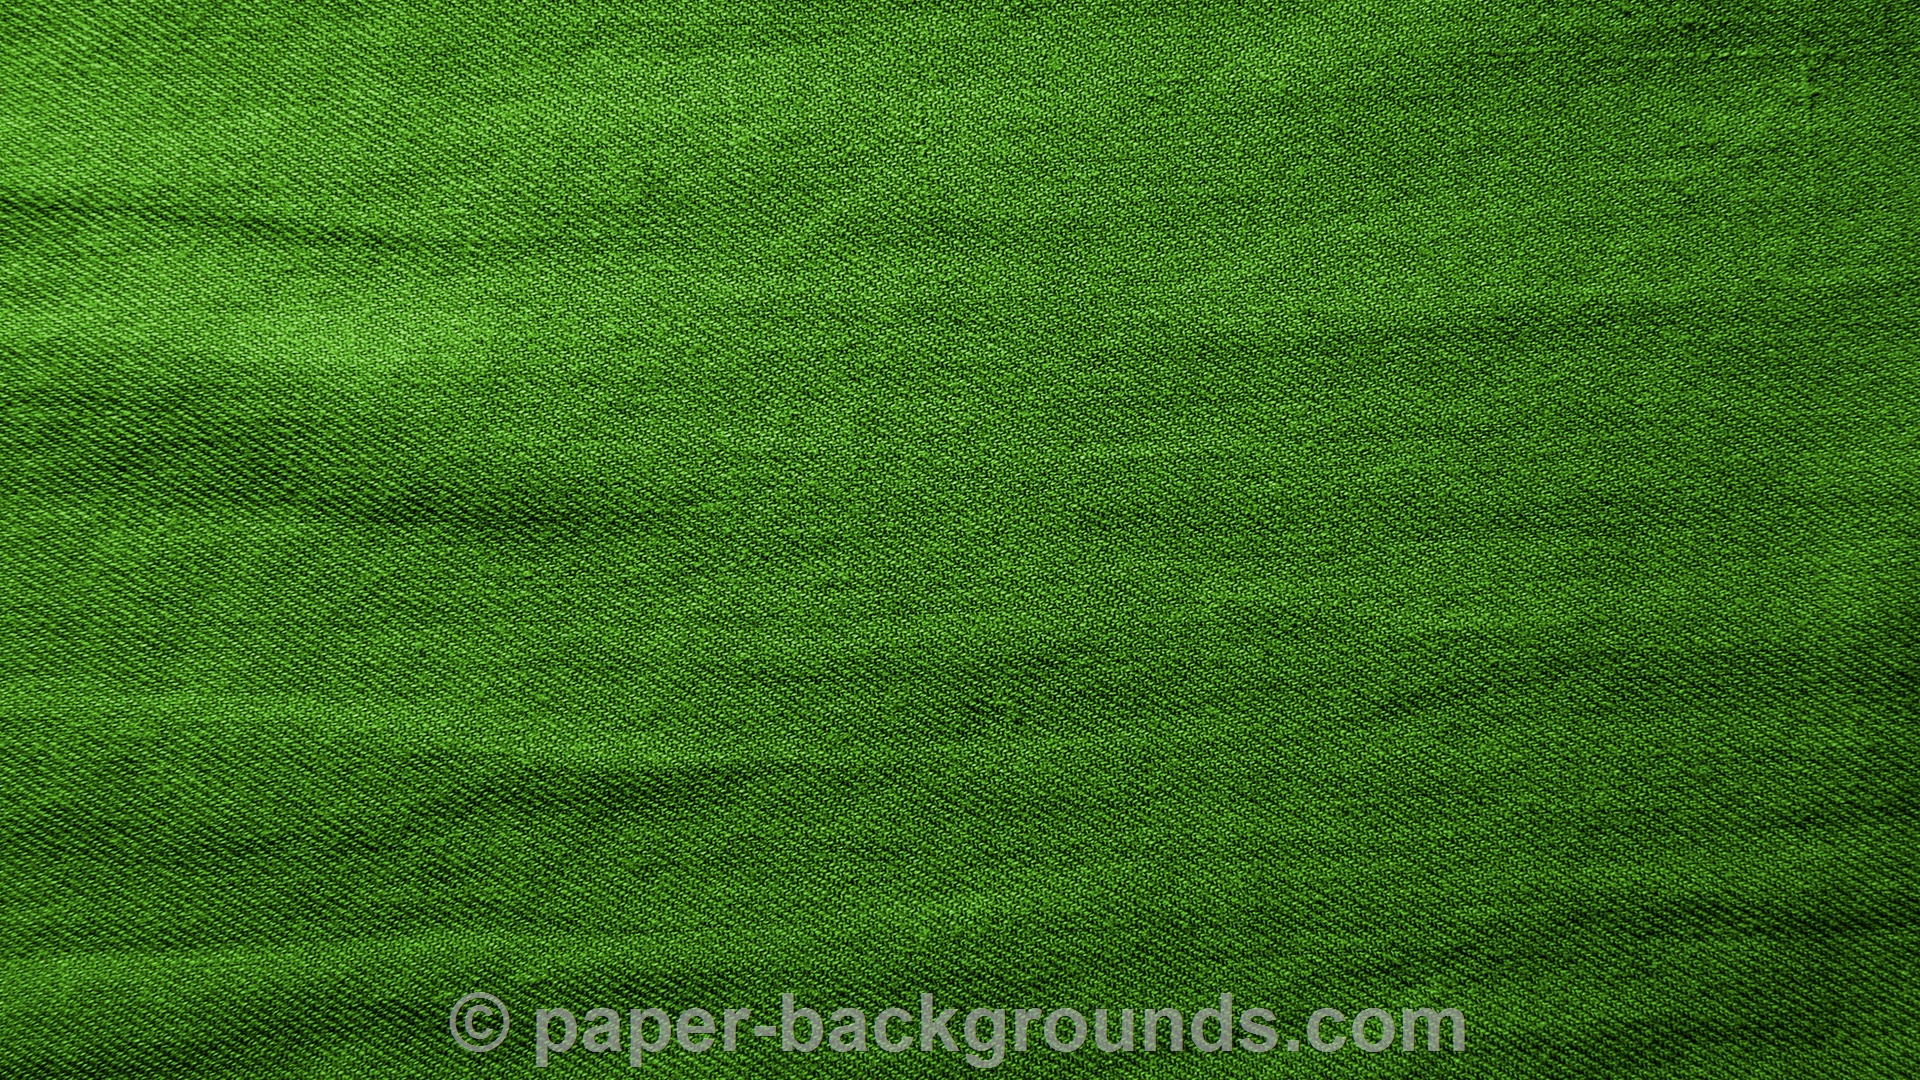 Wrinkled Green Canvas Texture HD